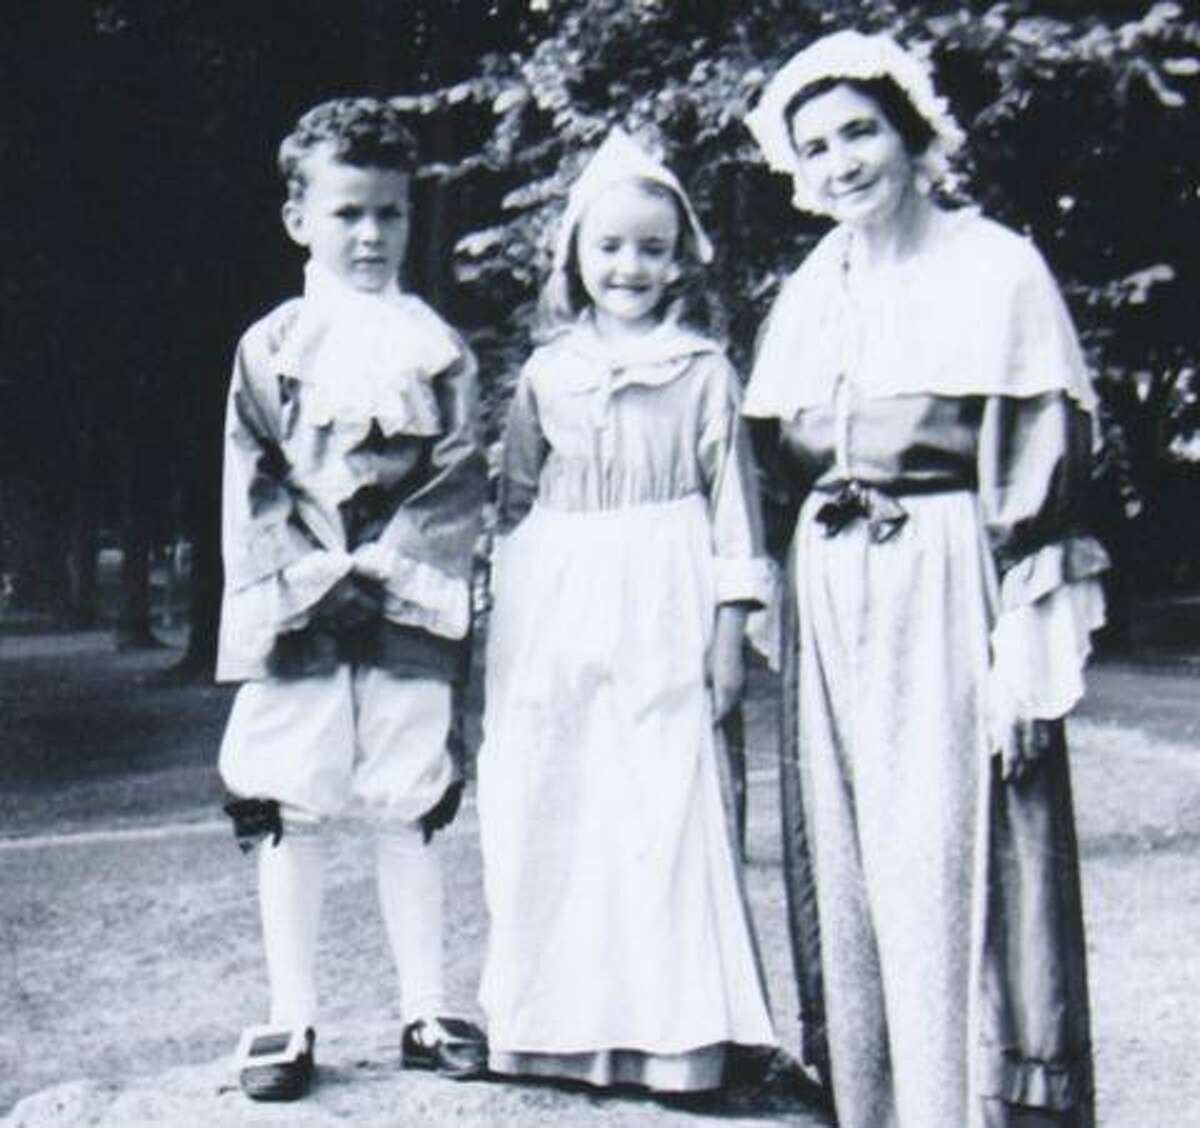 Photograph by Fran Kelsey. From left, Walter Green, Julianna Smith and Mrs. John Colby in 1939 at an event sponsored by the Sharon Woman's Club, marking the bicentennial of the town's founding.